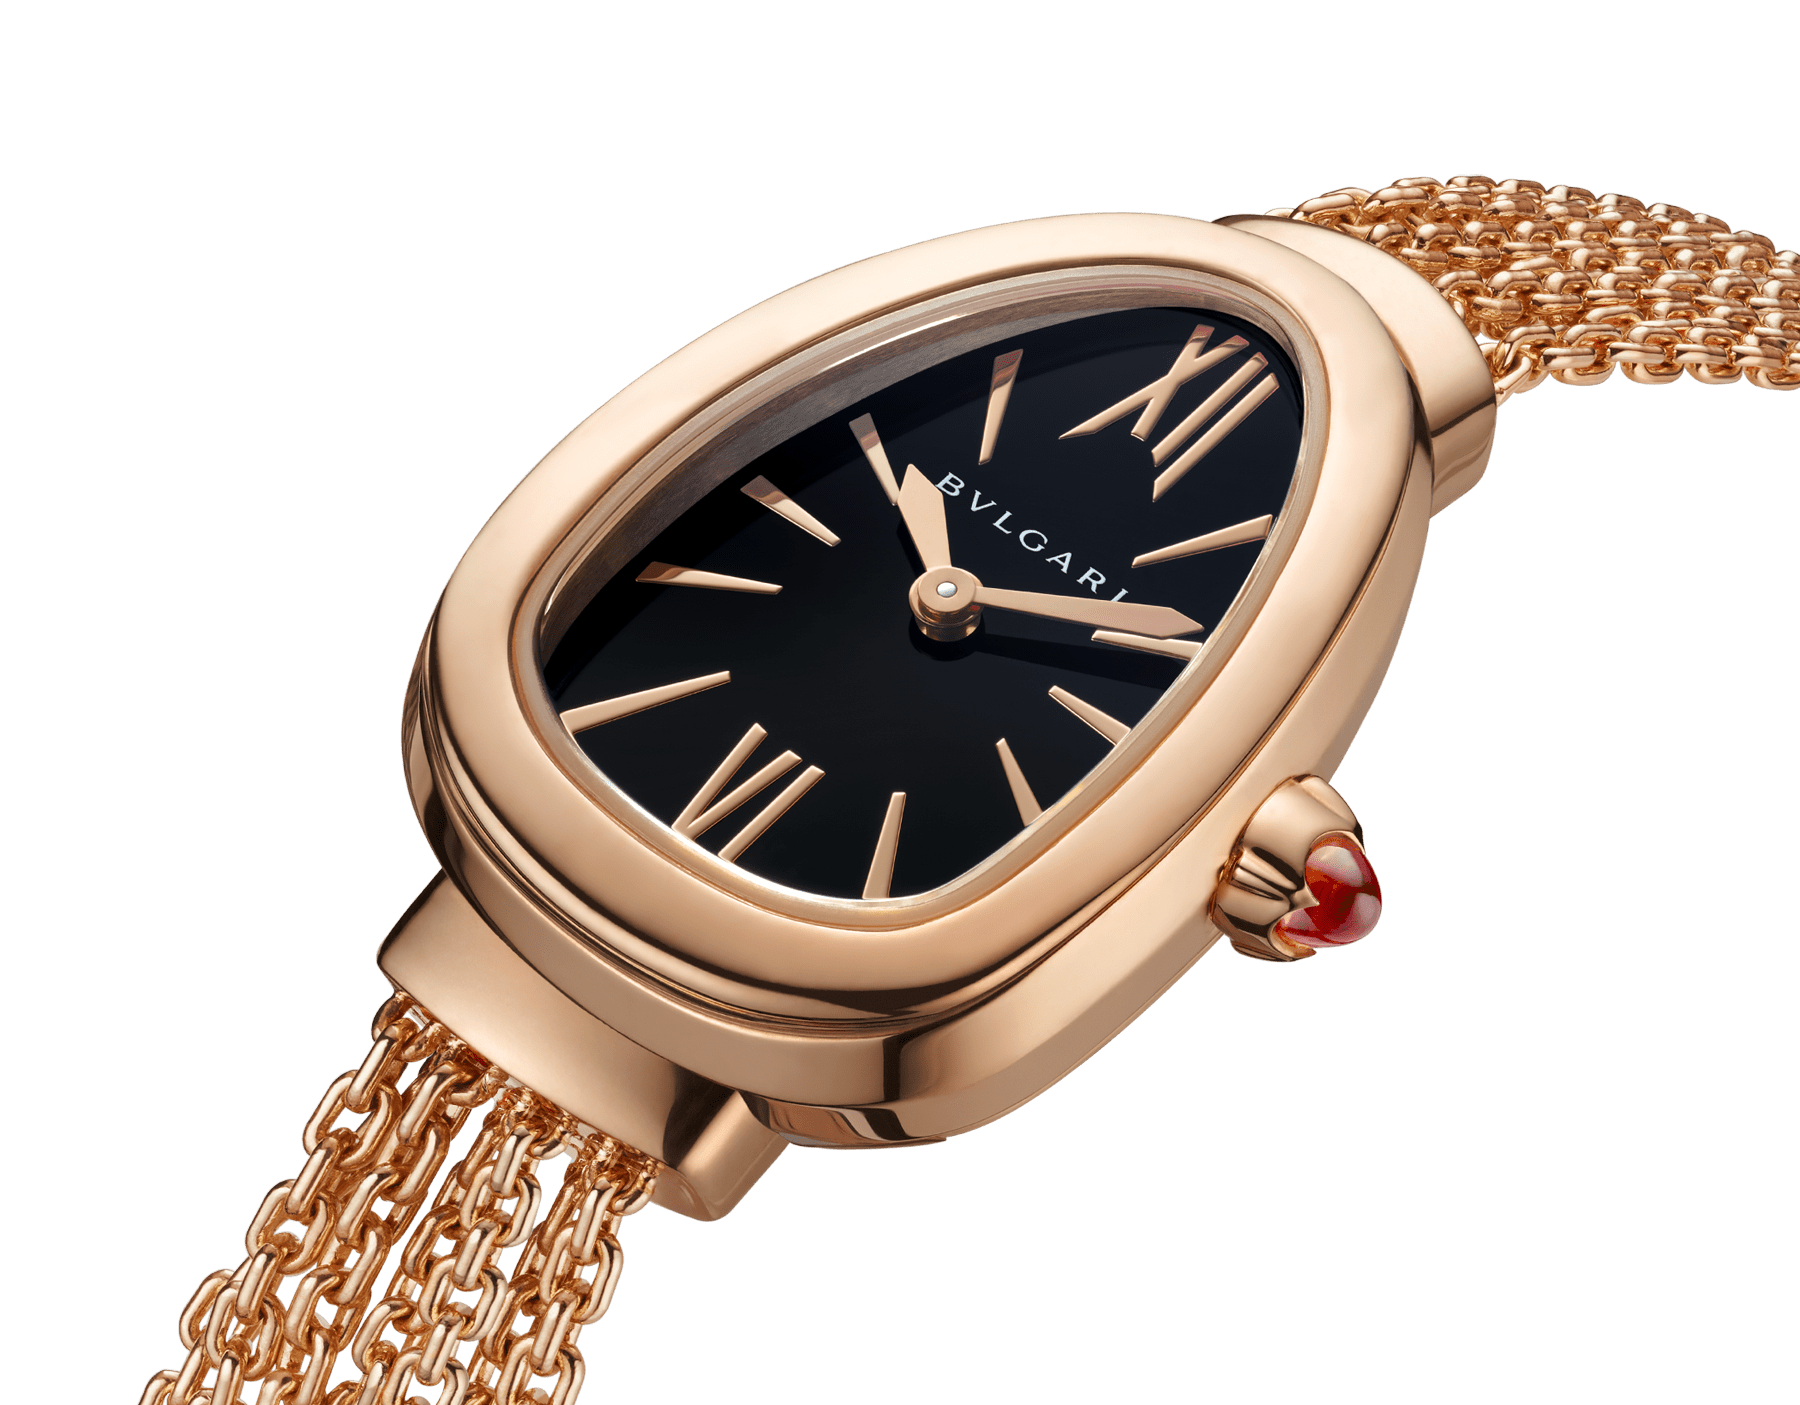 Serpenti watch in 18 kt rose gold case and interchangeable chain bracelet, with black lacquered dial 102728 image 3